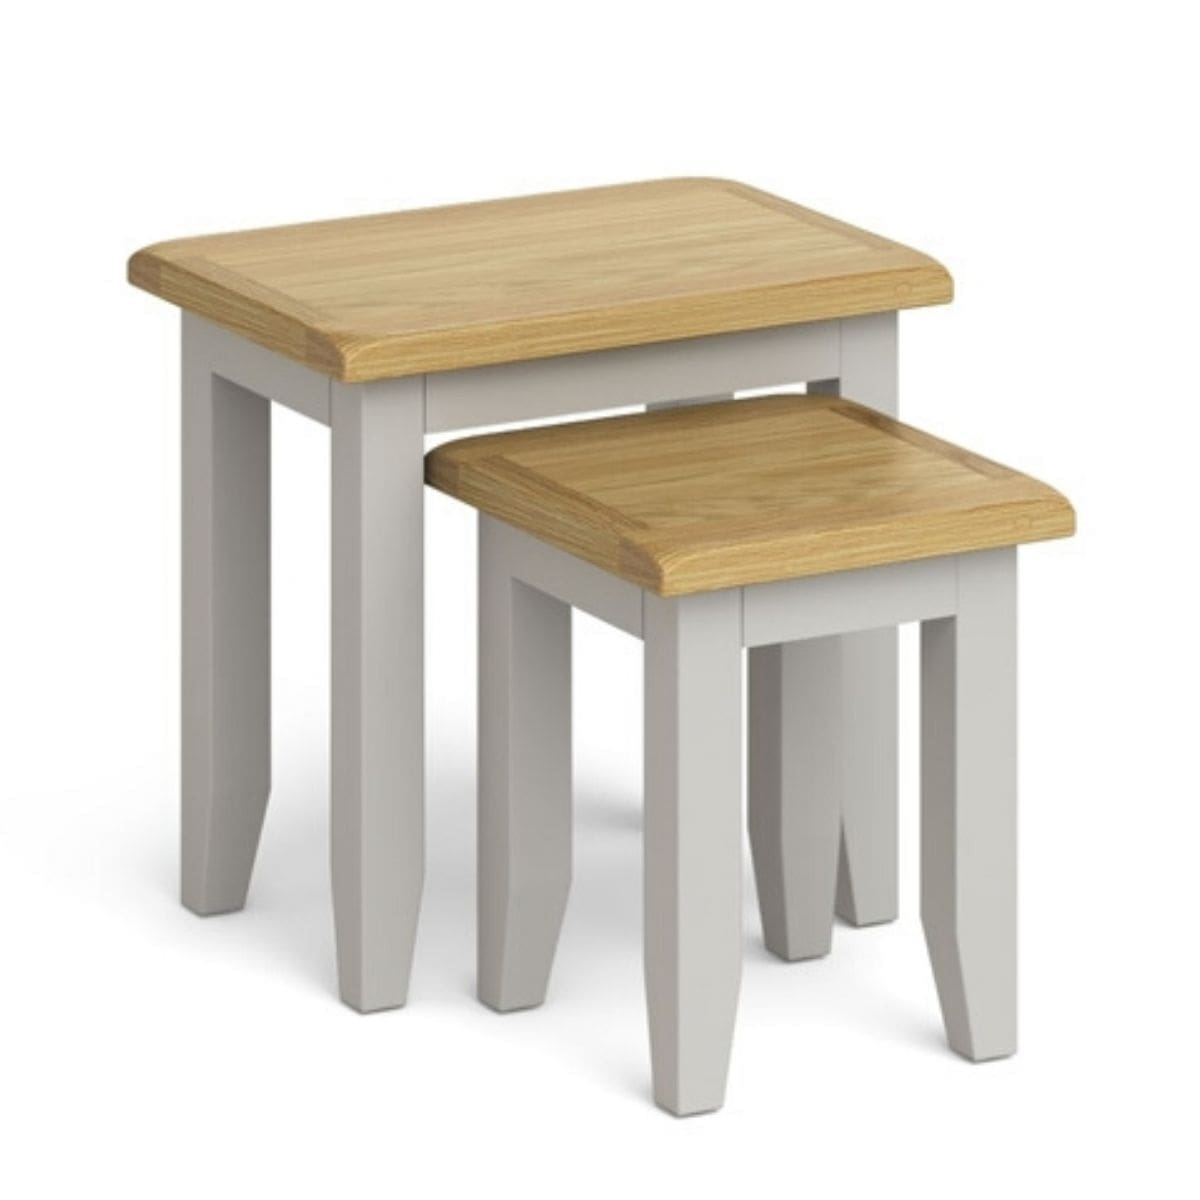 Gentry Nest of Tables